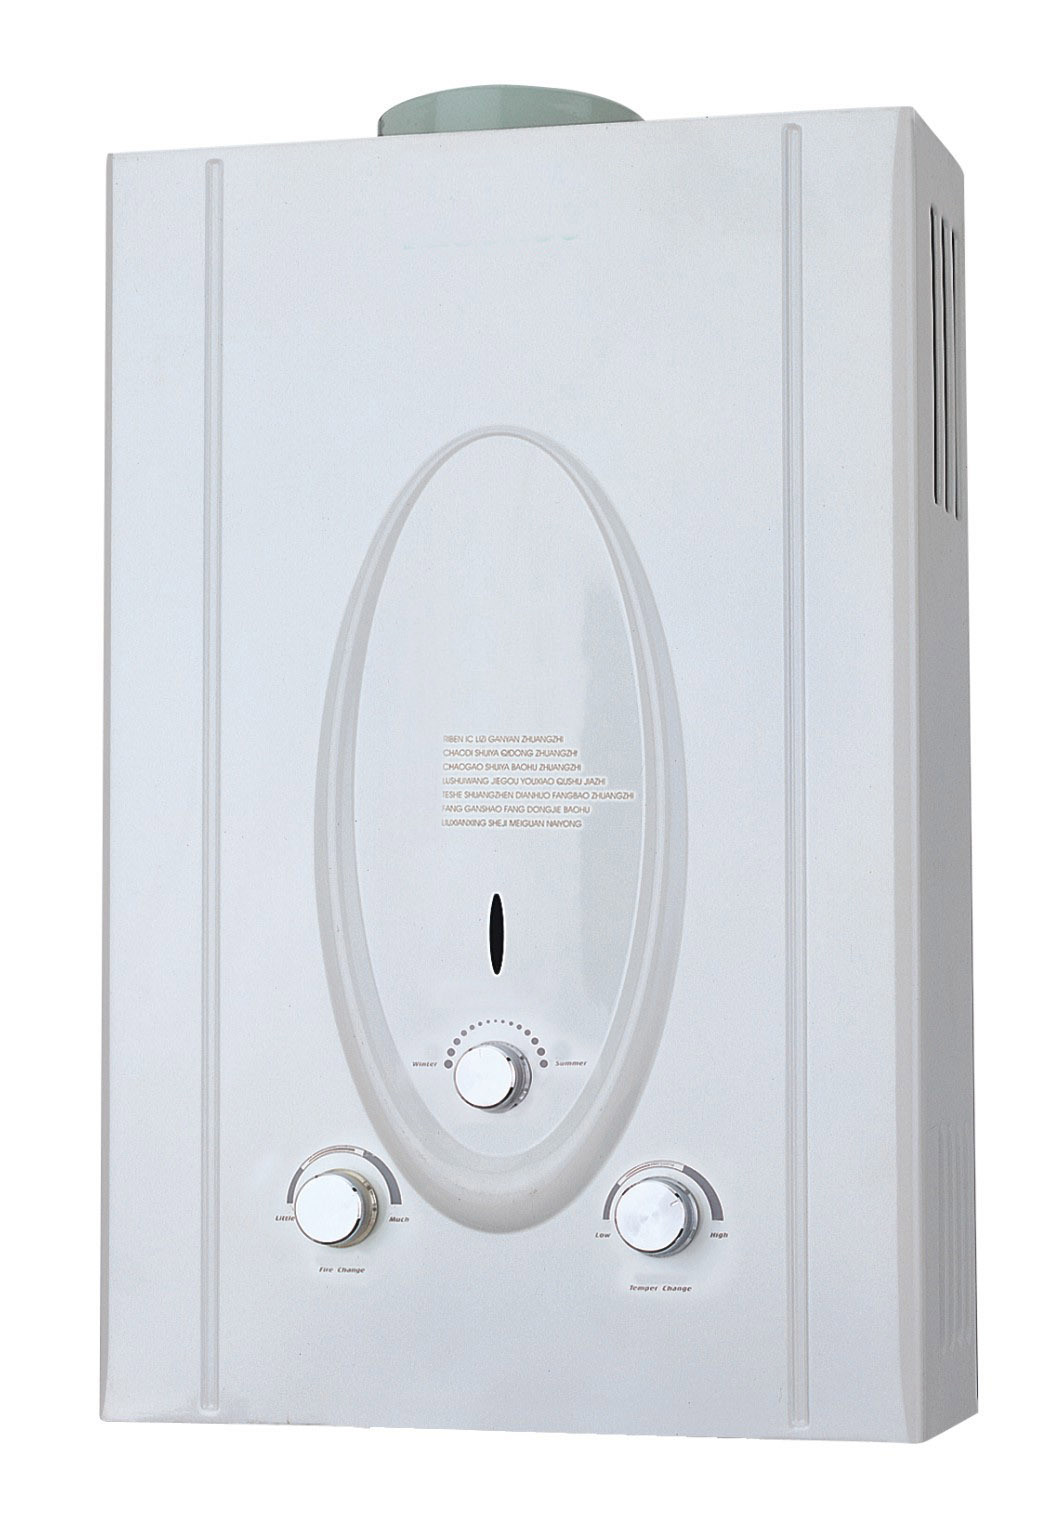 Elite Gas Water Heater with Summer/Winter Switch (S25)